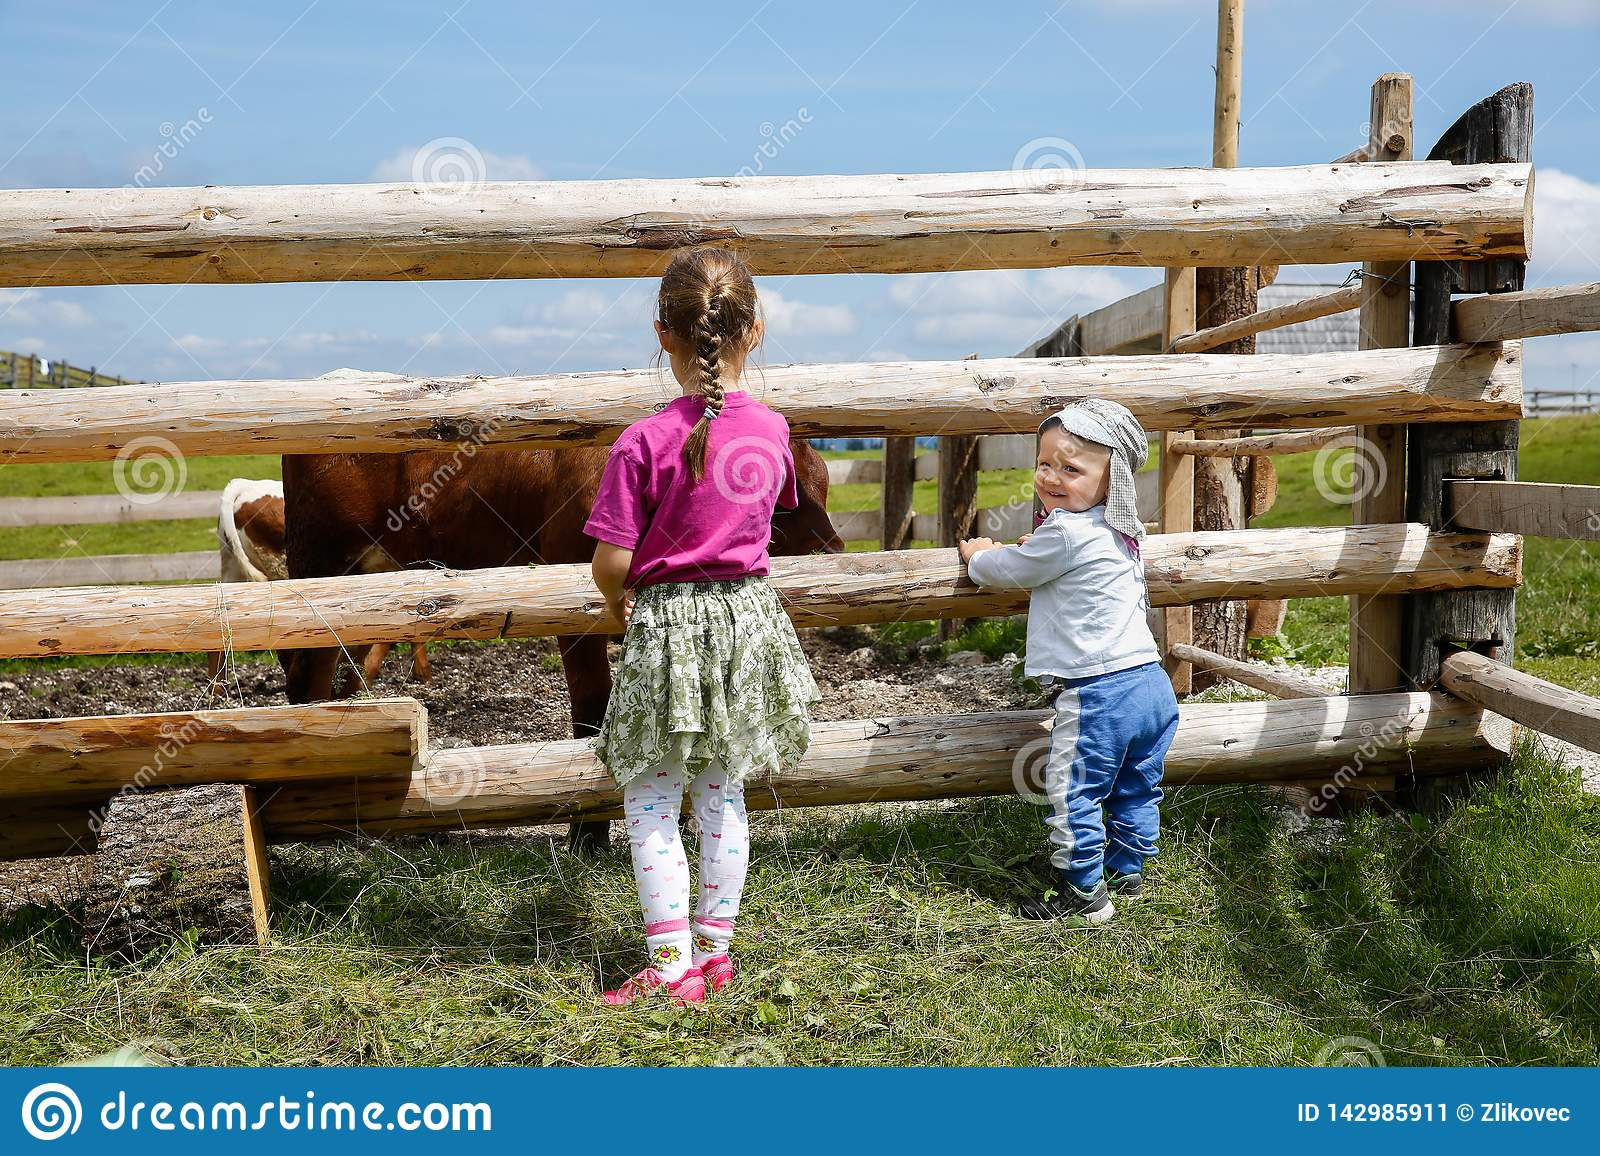 Boy and a girl enjoying outdoors, observing cows on a farm